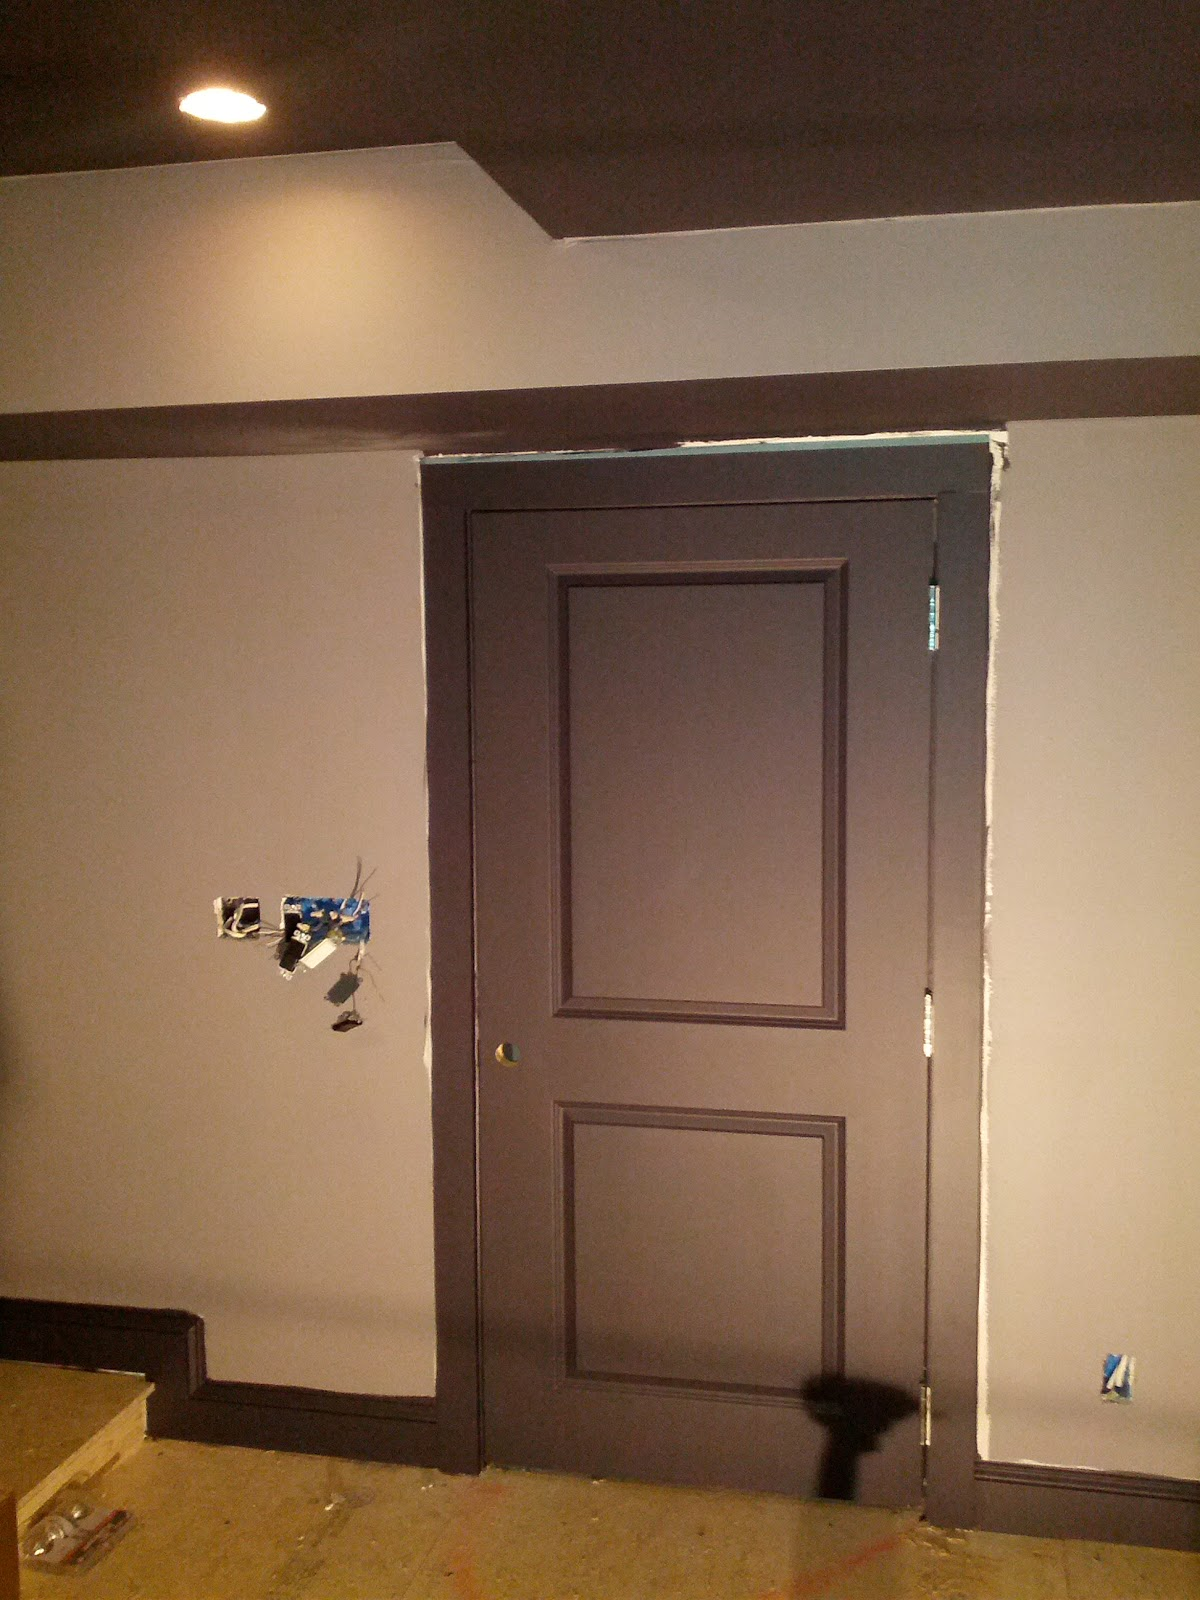 Attirant How To Finish A Basement And Home Theatre: Home Theater Door And Trim  Painted.